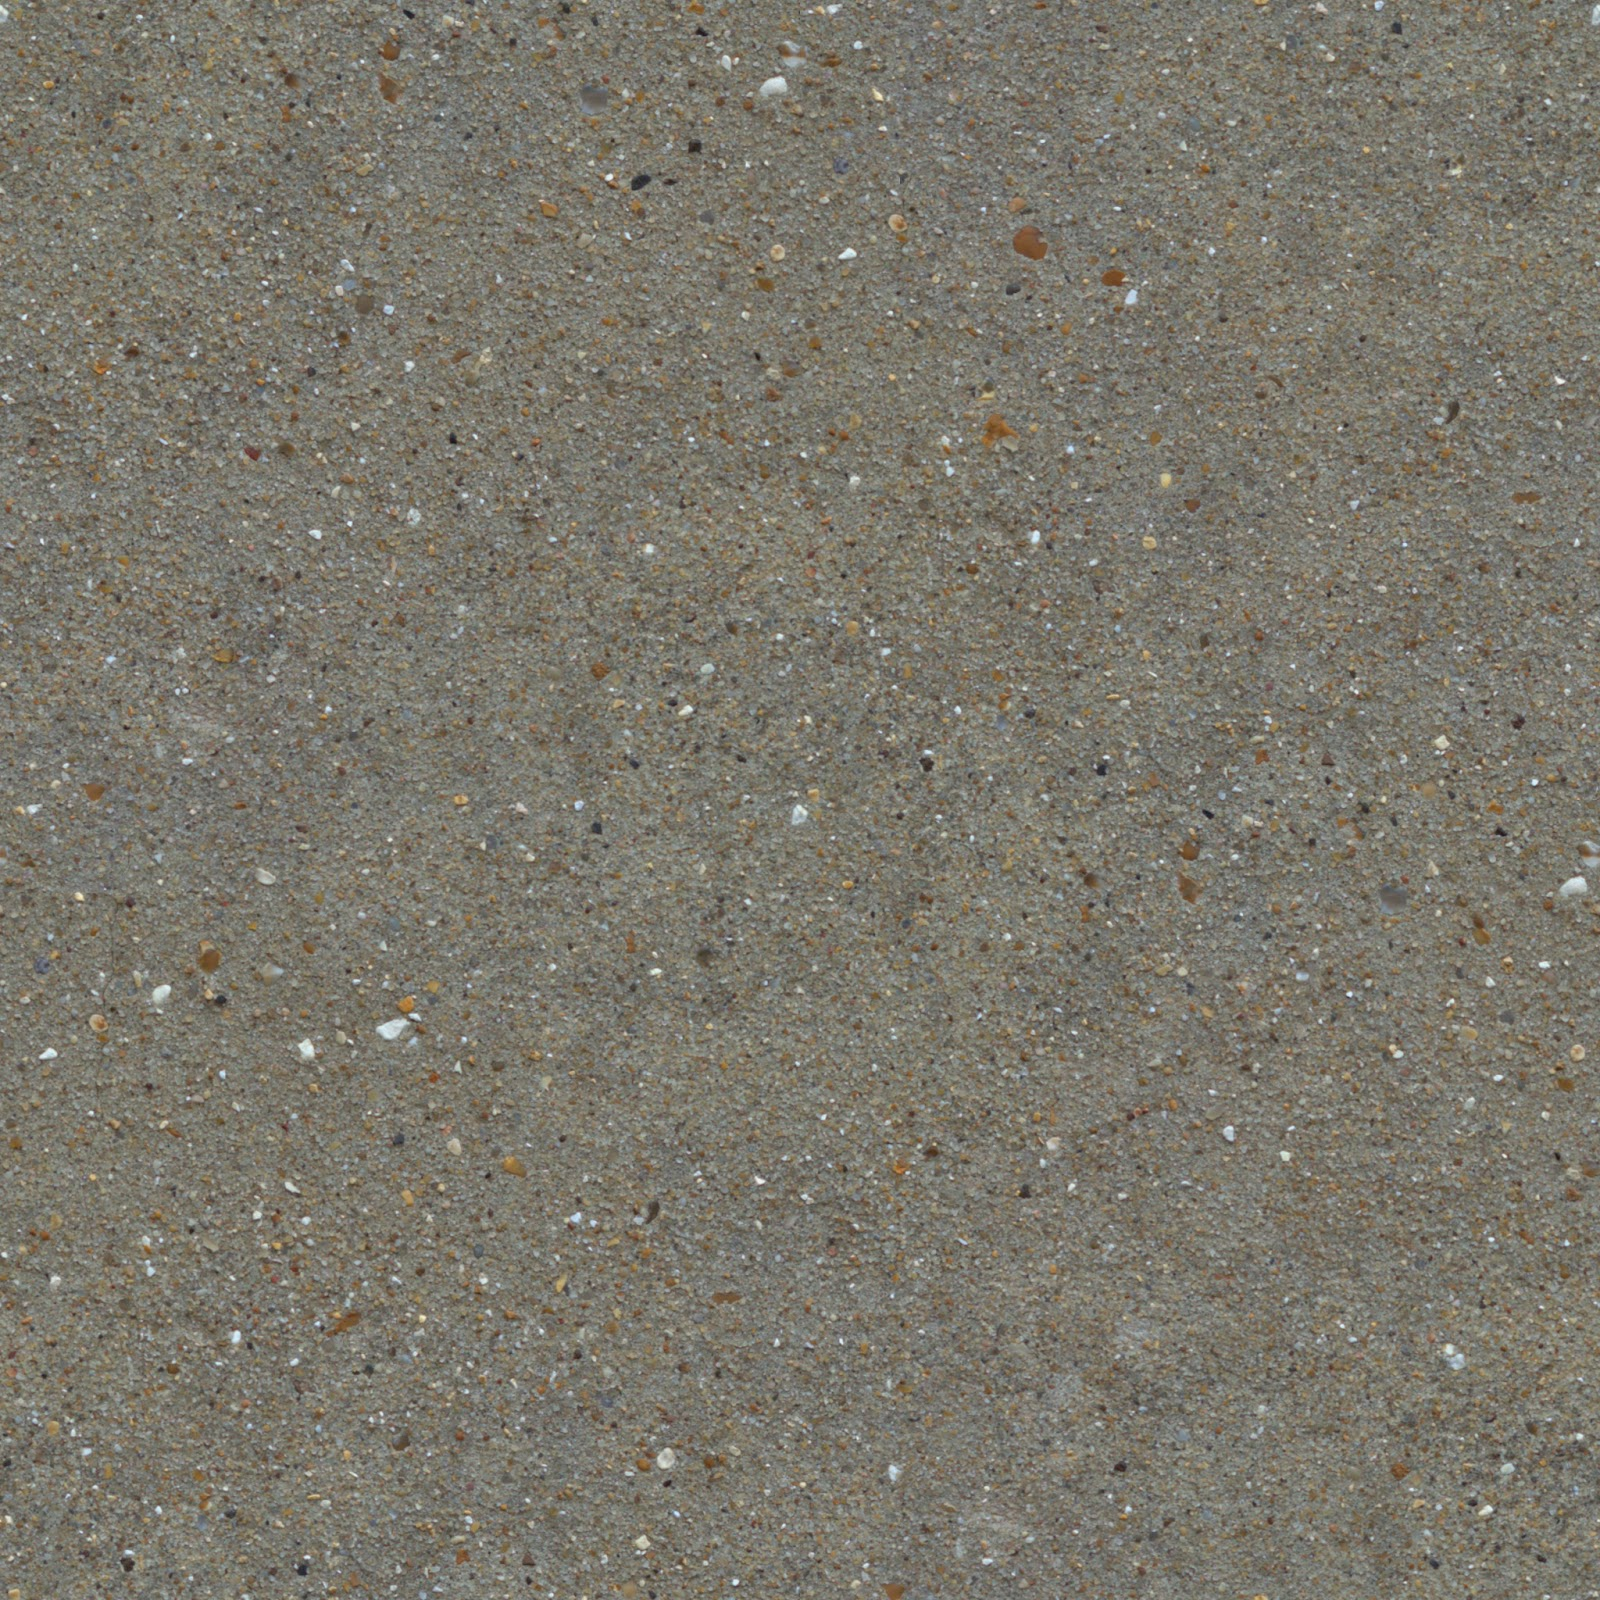 Wall sand feb_2015 seamless texture 2048x2048